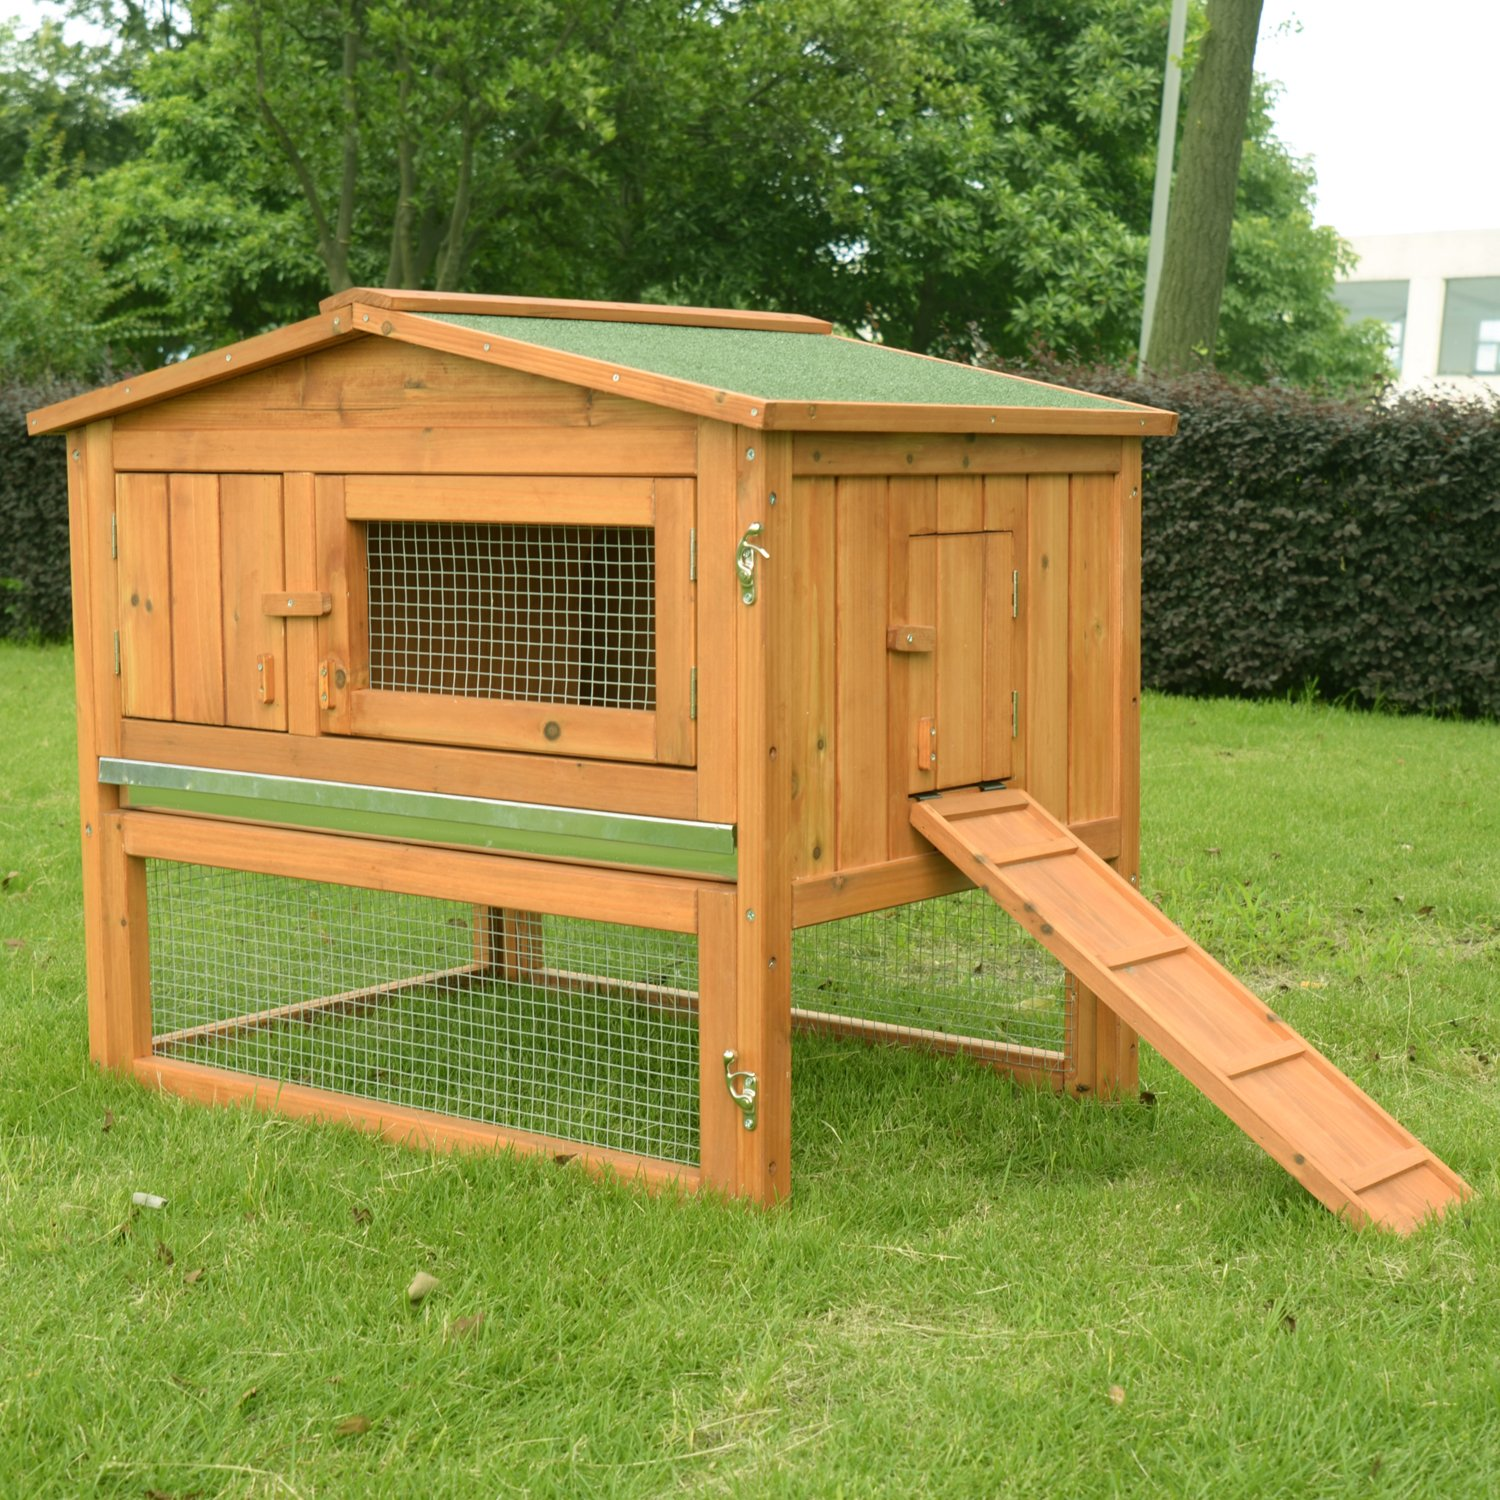 rabbit free pet hutch pawhut overstock product handmade com bunny today level shipping deluxe house brown for inch wood backyard hutches supplies sale in